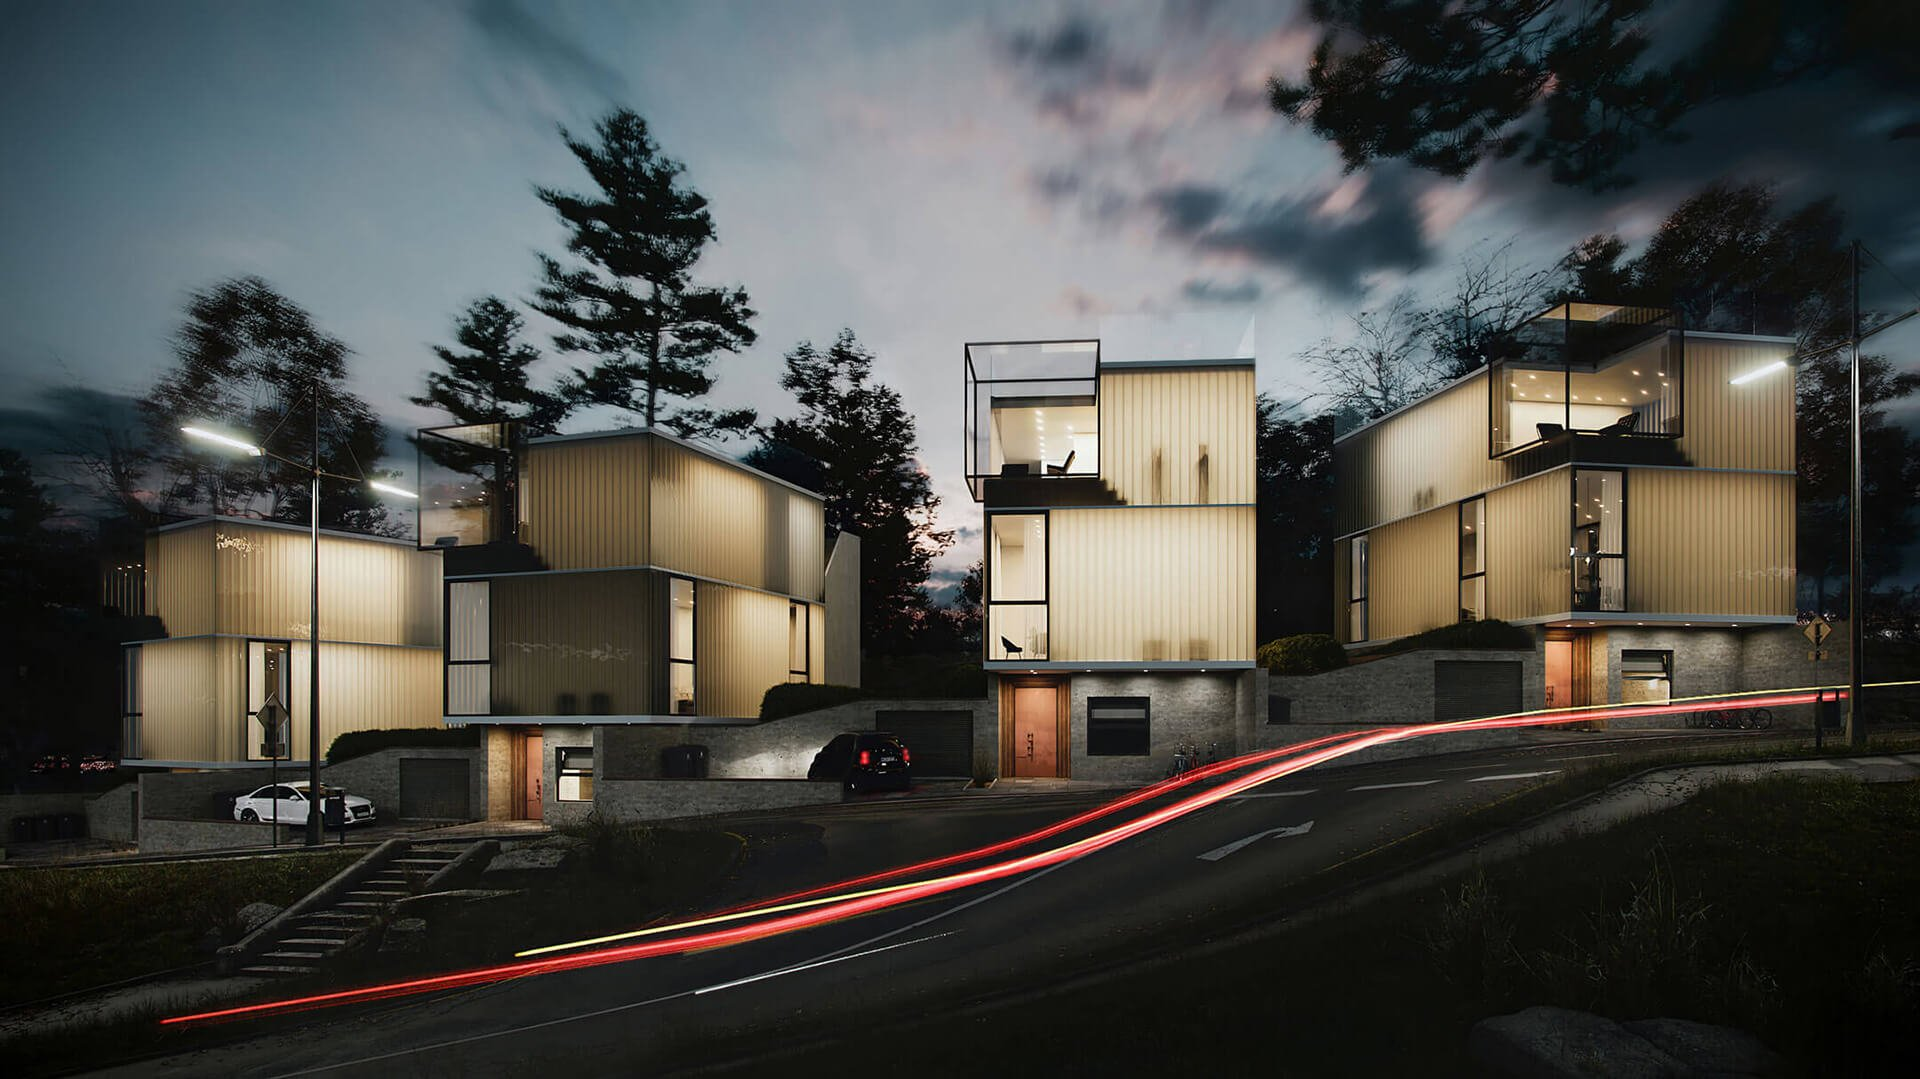 3D Exterior Visualization Of a Residential Area at Night